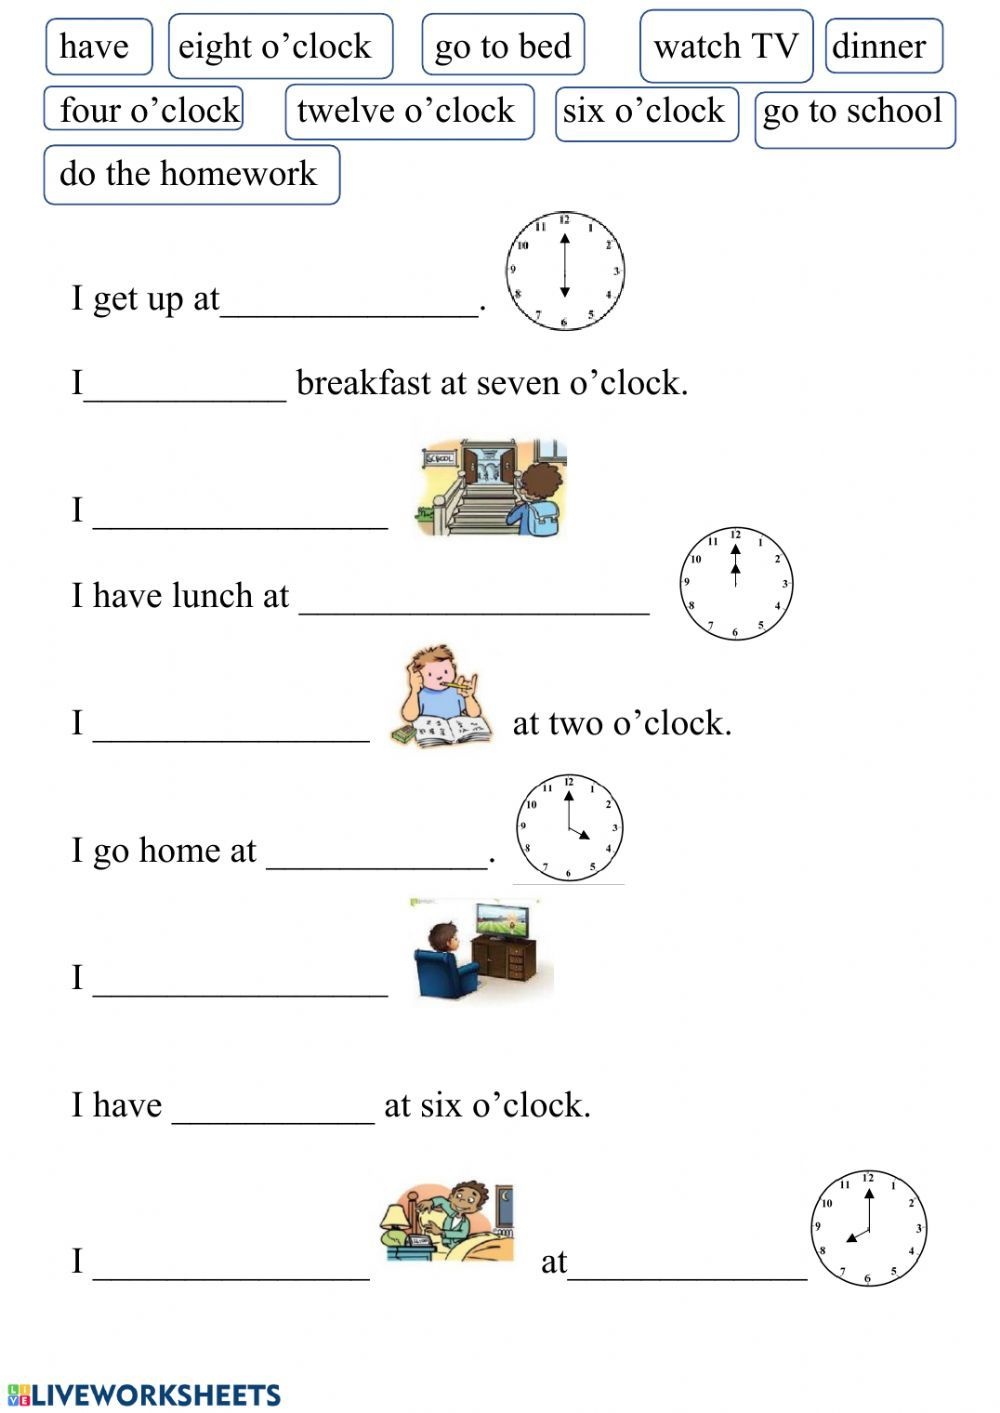 Daily Routines Interactive And Downloadable Worksheet You Can Do The Exercises Online Or Dow Daily Routine Worksheet Learning English For Kids Time Worksheets